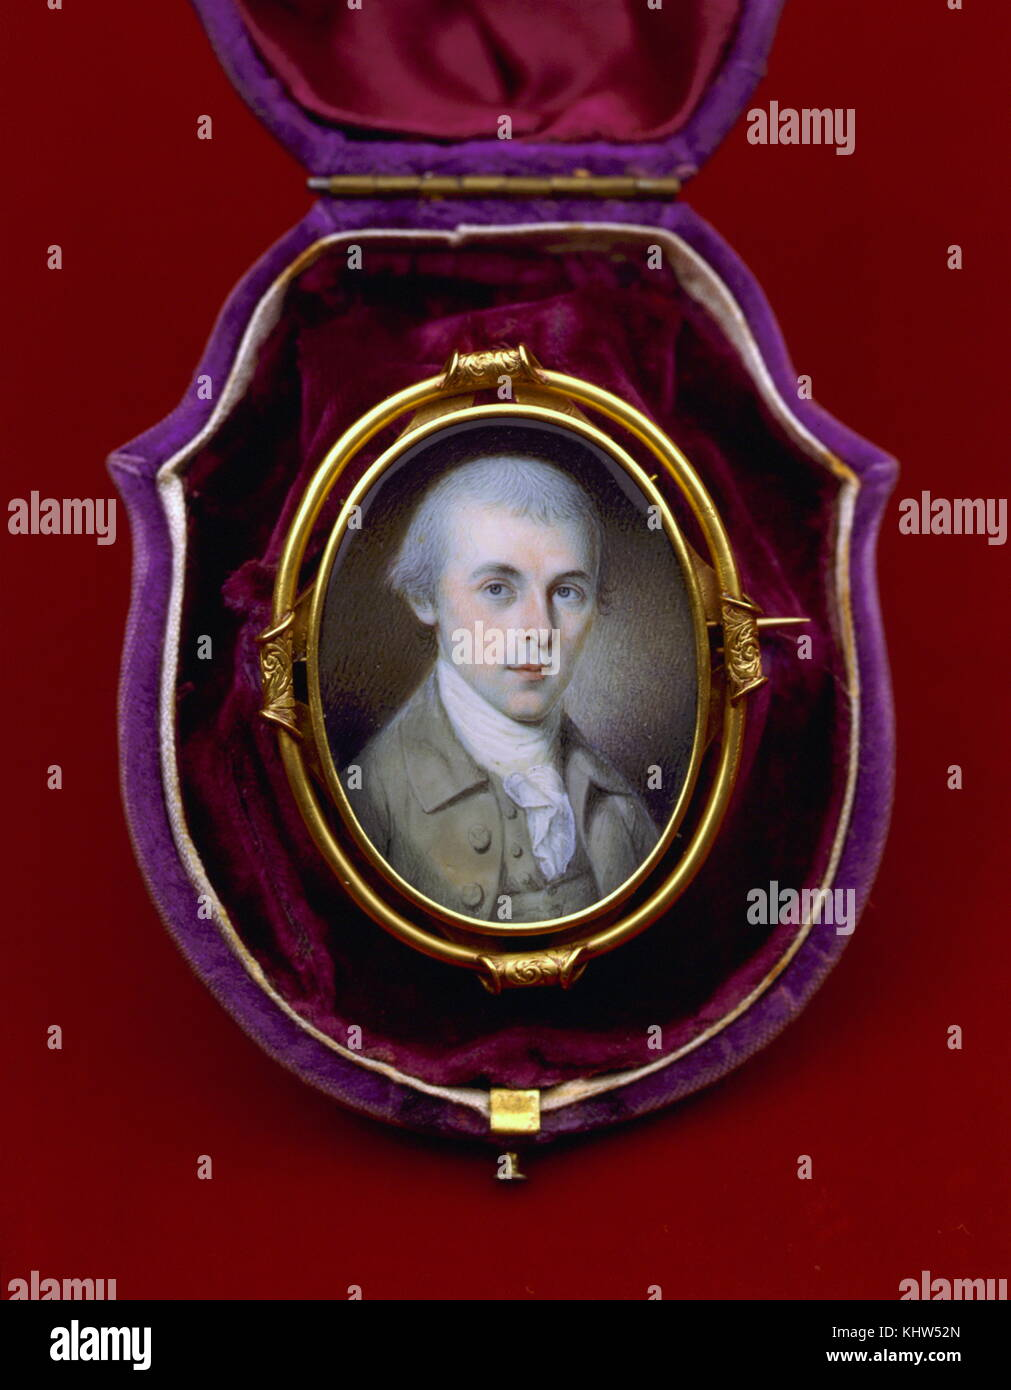 Miniature portrait of James Madison (1751-1836) an American statesman, Founding Father and 4th President of the - Stock Image